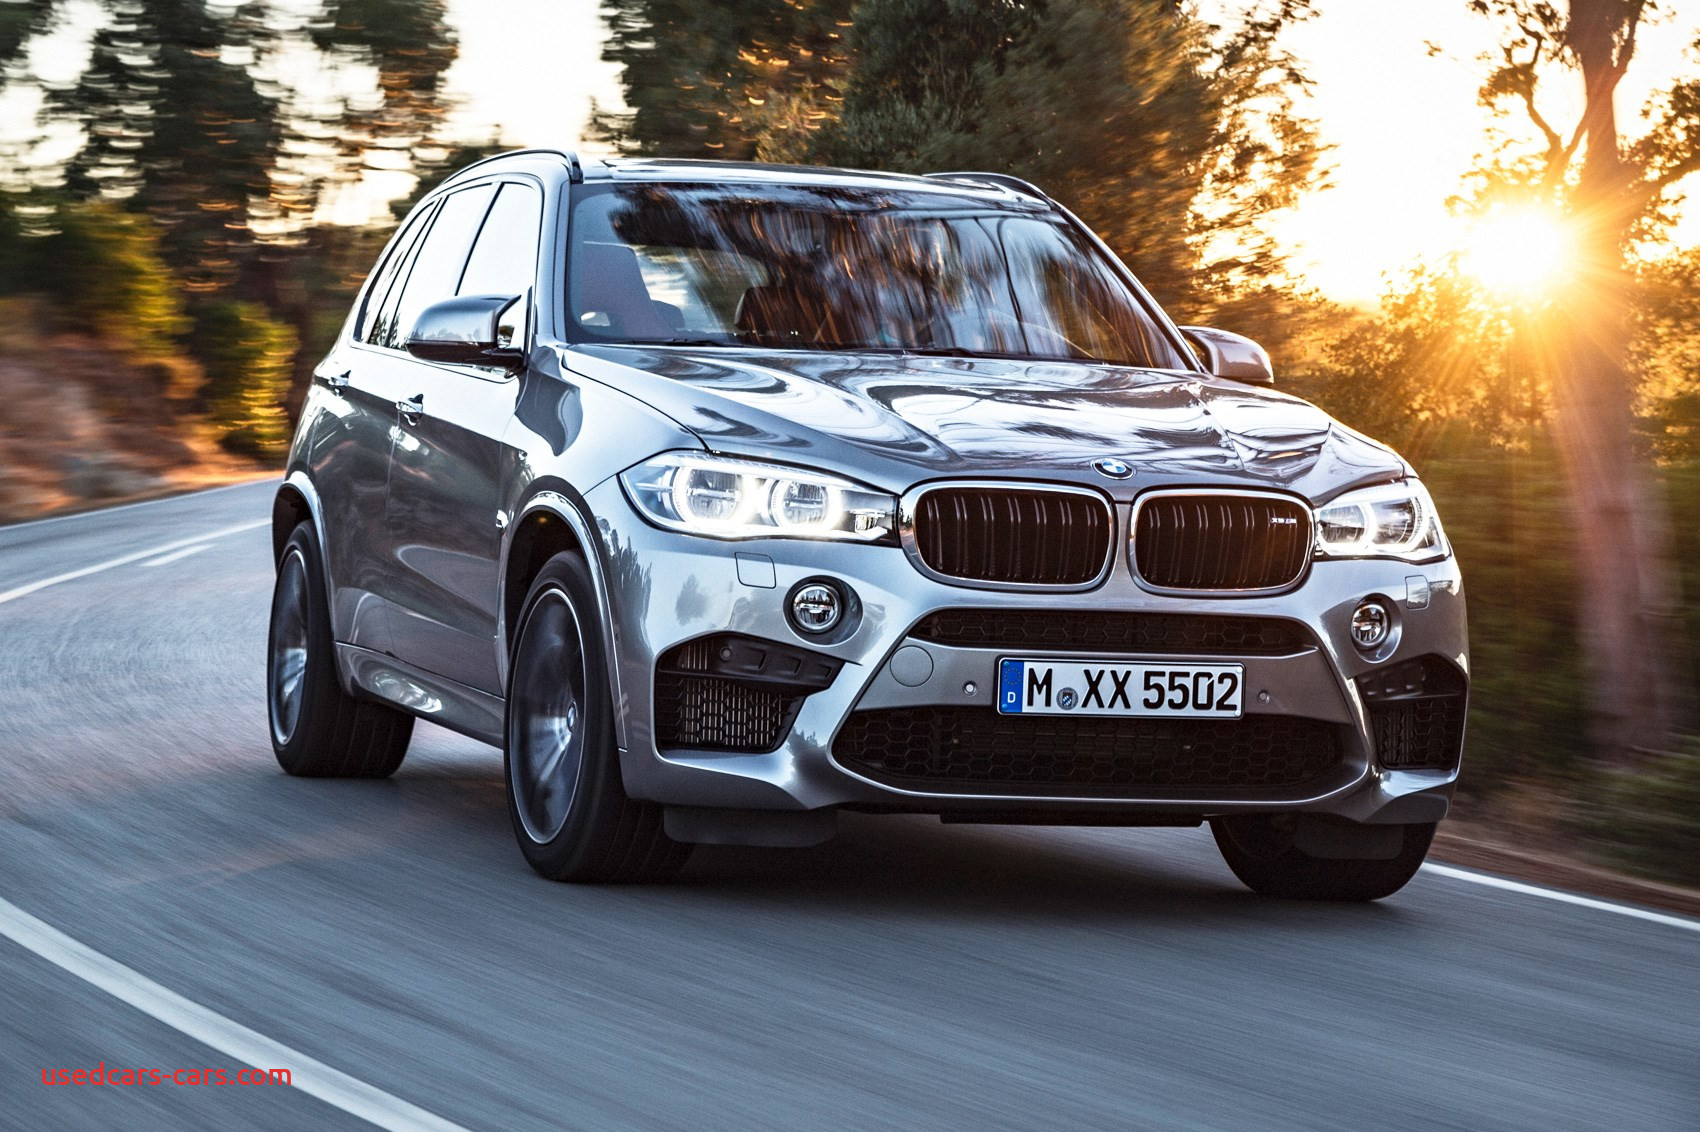 Used Cars for Sale X5 Awesome Bmw X5 M 2017 Review